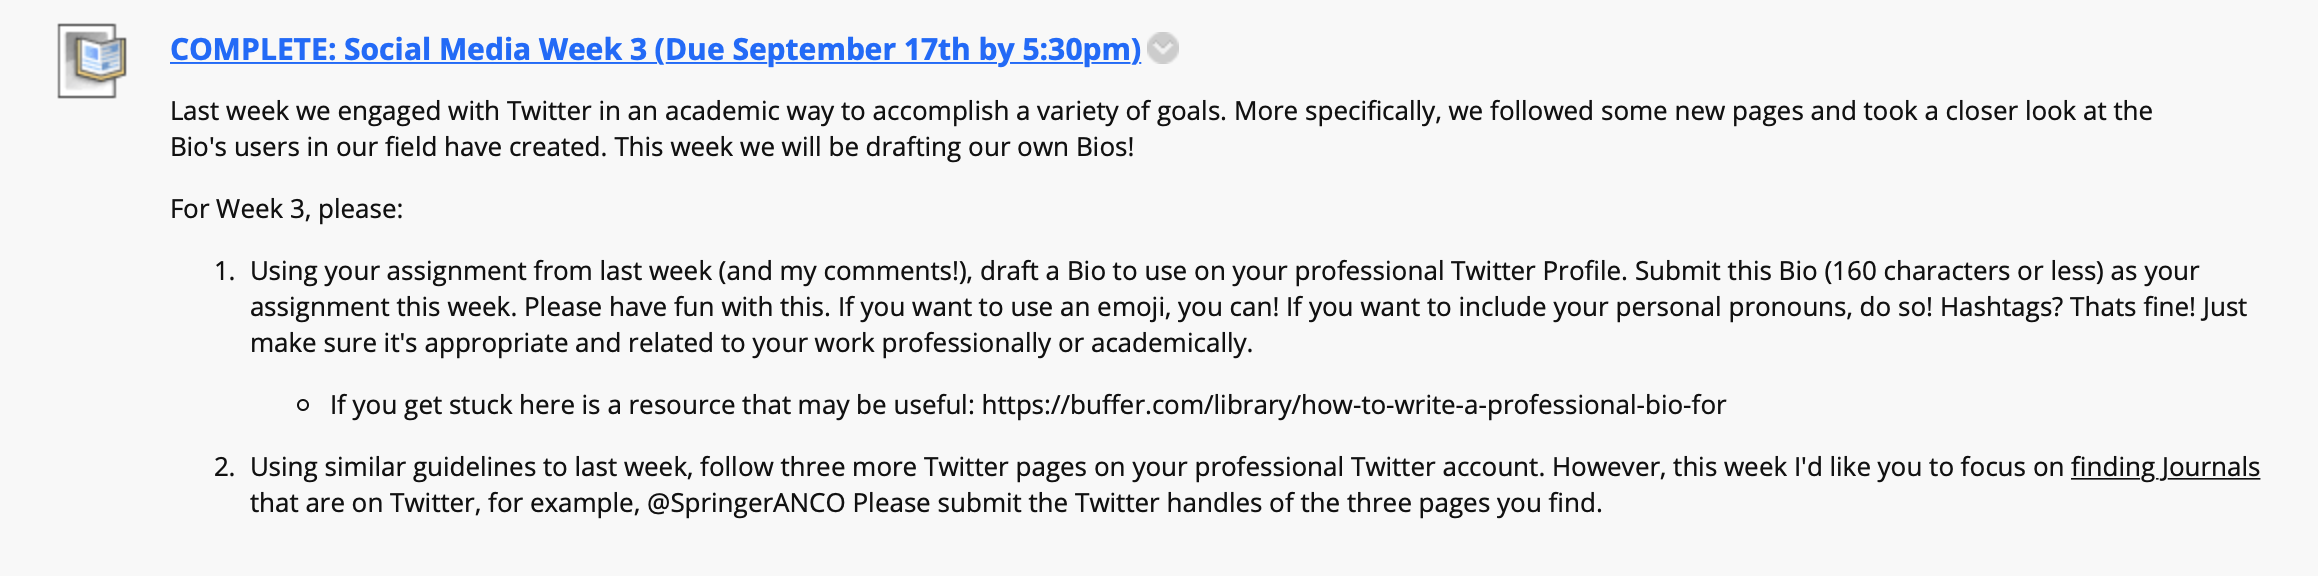 An extended screenshot from a course website that reads: Last week we engaged with Twitter in an academic way to accomplish a variety of goals. More specifically, we followed some new pages and took a closer look at the Bio's users in our field have created. This week we will be drafting our own Bios! For Week 3, please:  Using your assignment from last week (and my comments!), draft a Bio to use on your professional Twitter Profile. Submit this Bio (160 characters or less) as your assignment this week. Please have fun with this. If you want to use an emoji, you can! If you want to include your personal pronouns, do so! Hashtags? That's fine! Just make sure it's appropriate and related to your work professionally or academically.  If you get stuck here is a resource that may be useful: https://buffer.com/library/how-to-write-a-professional-bio-for